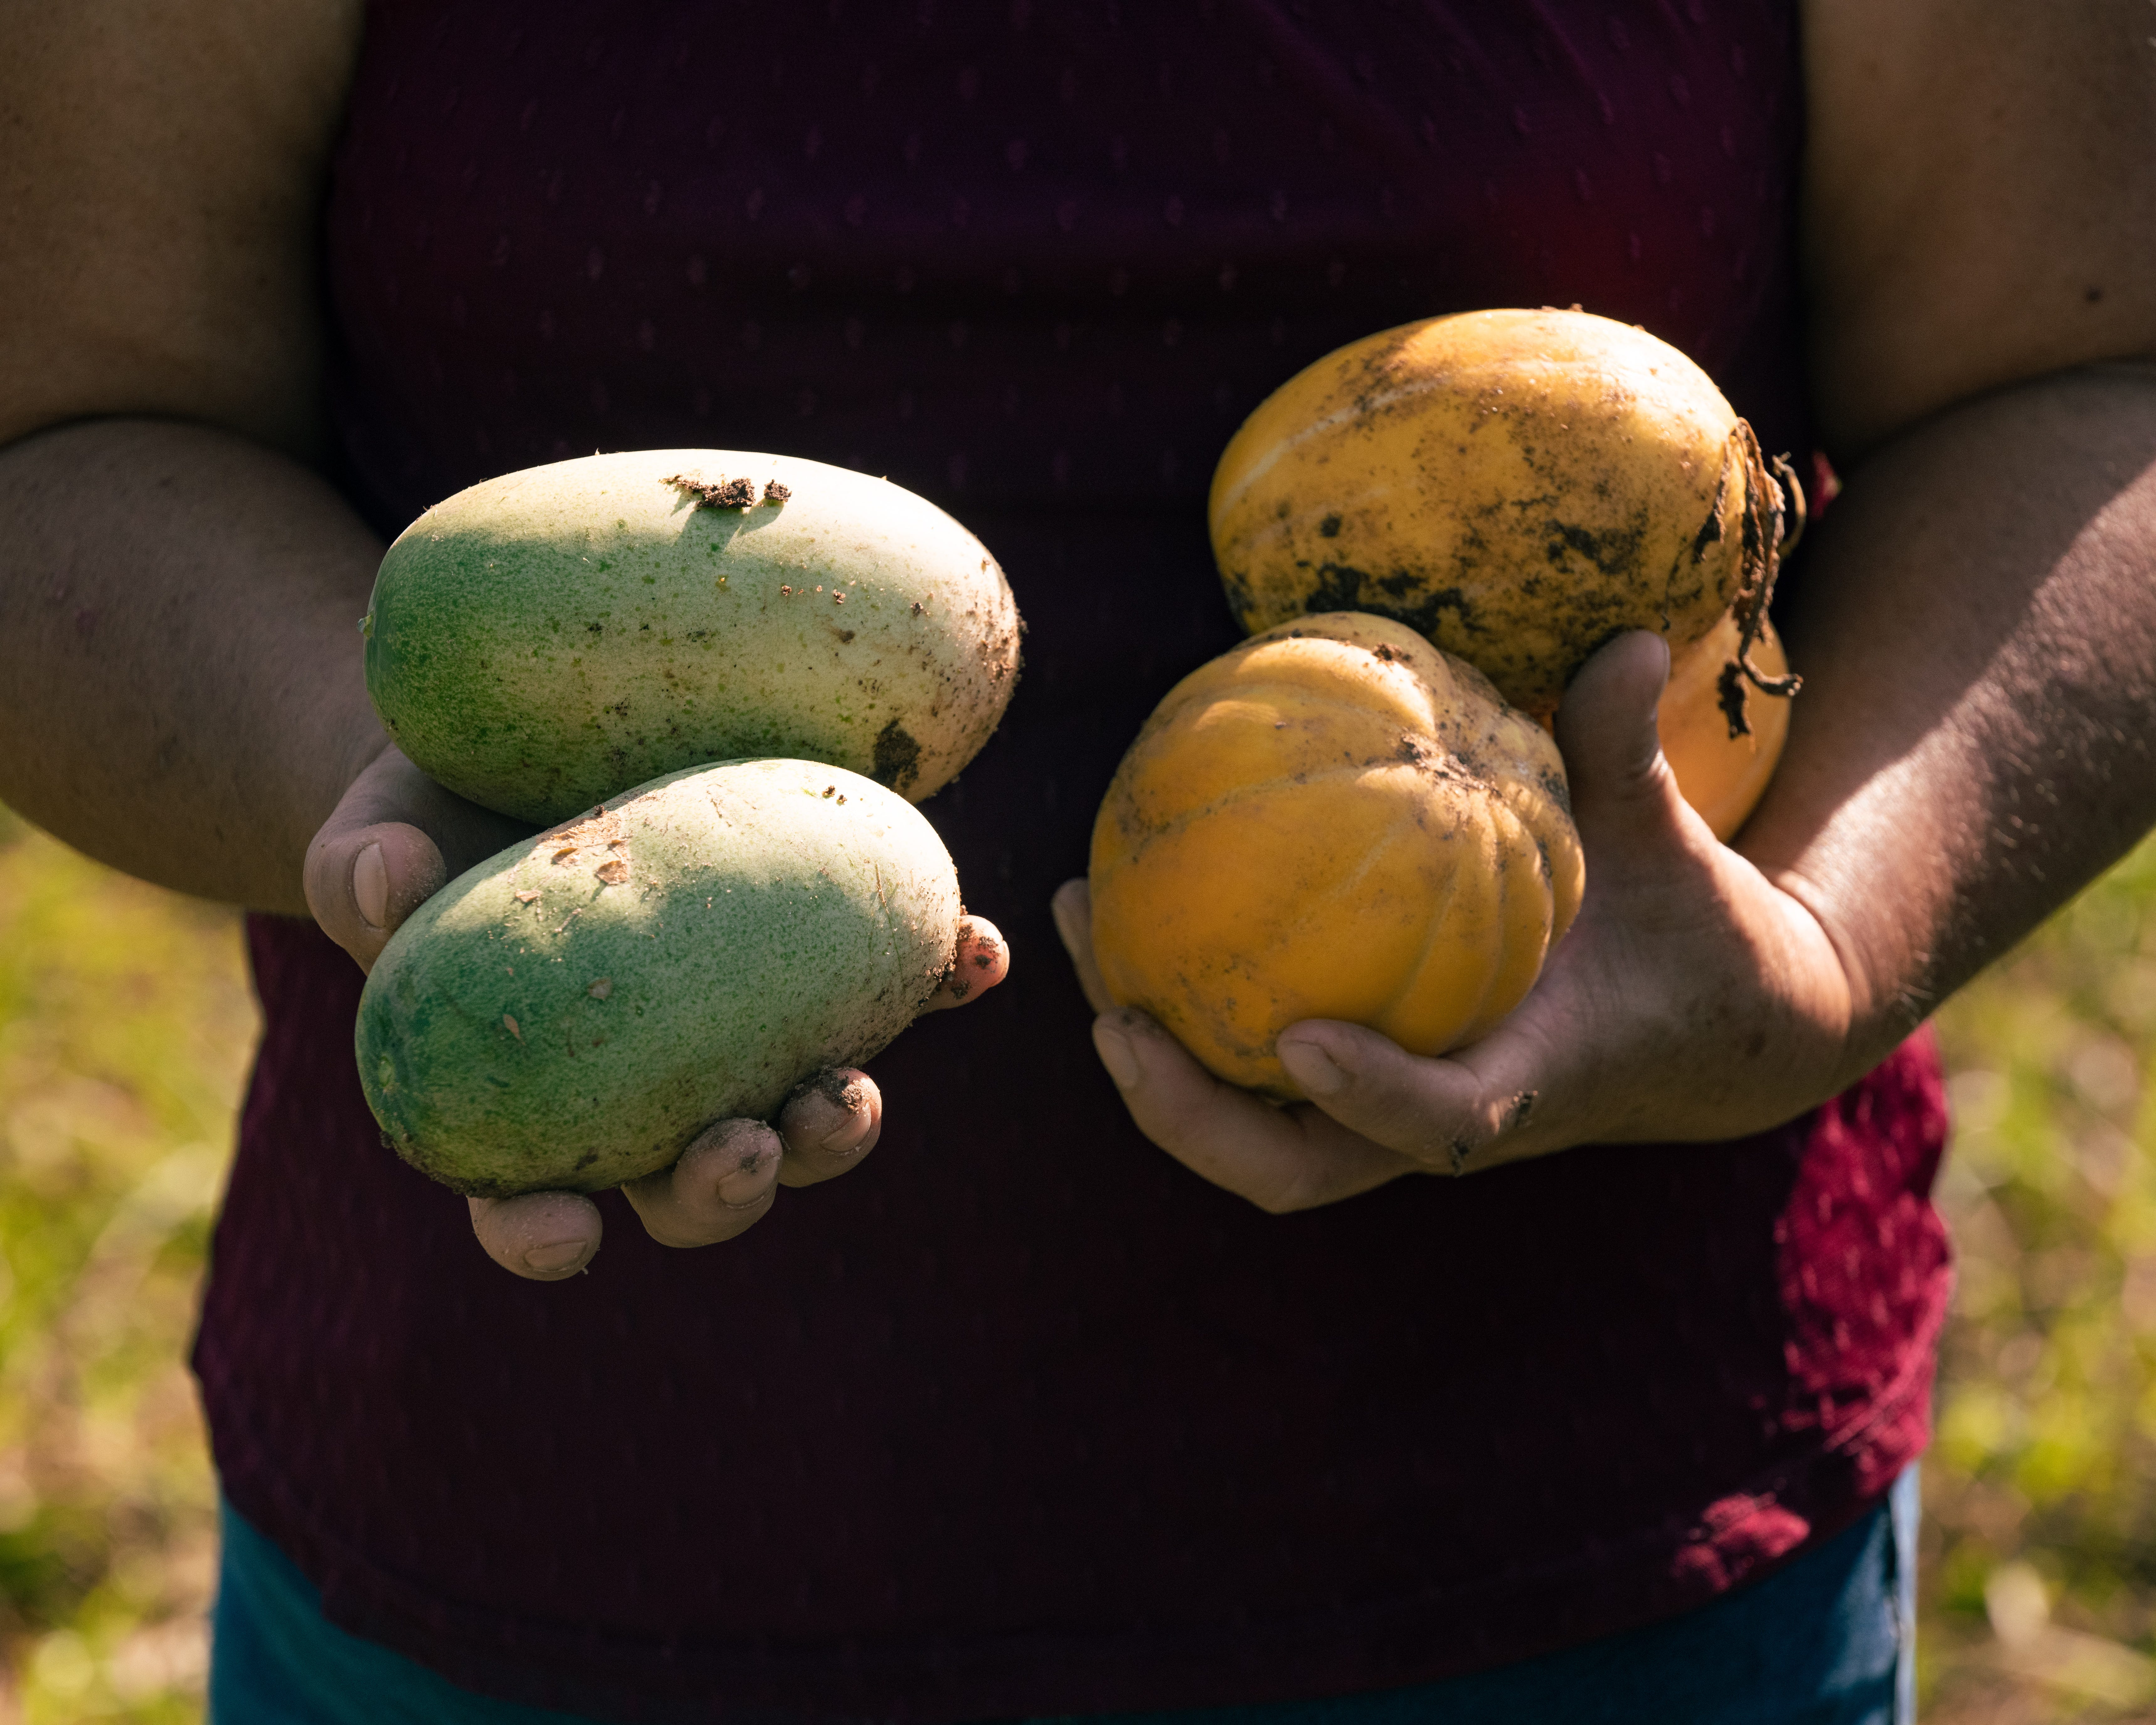 Chue Lee of Lee's One Fortune Farm holds melons and cucumbers grown on her property in Morganton.